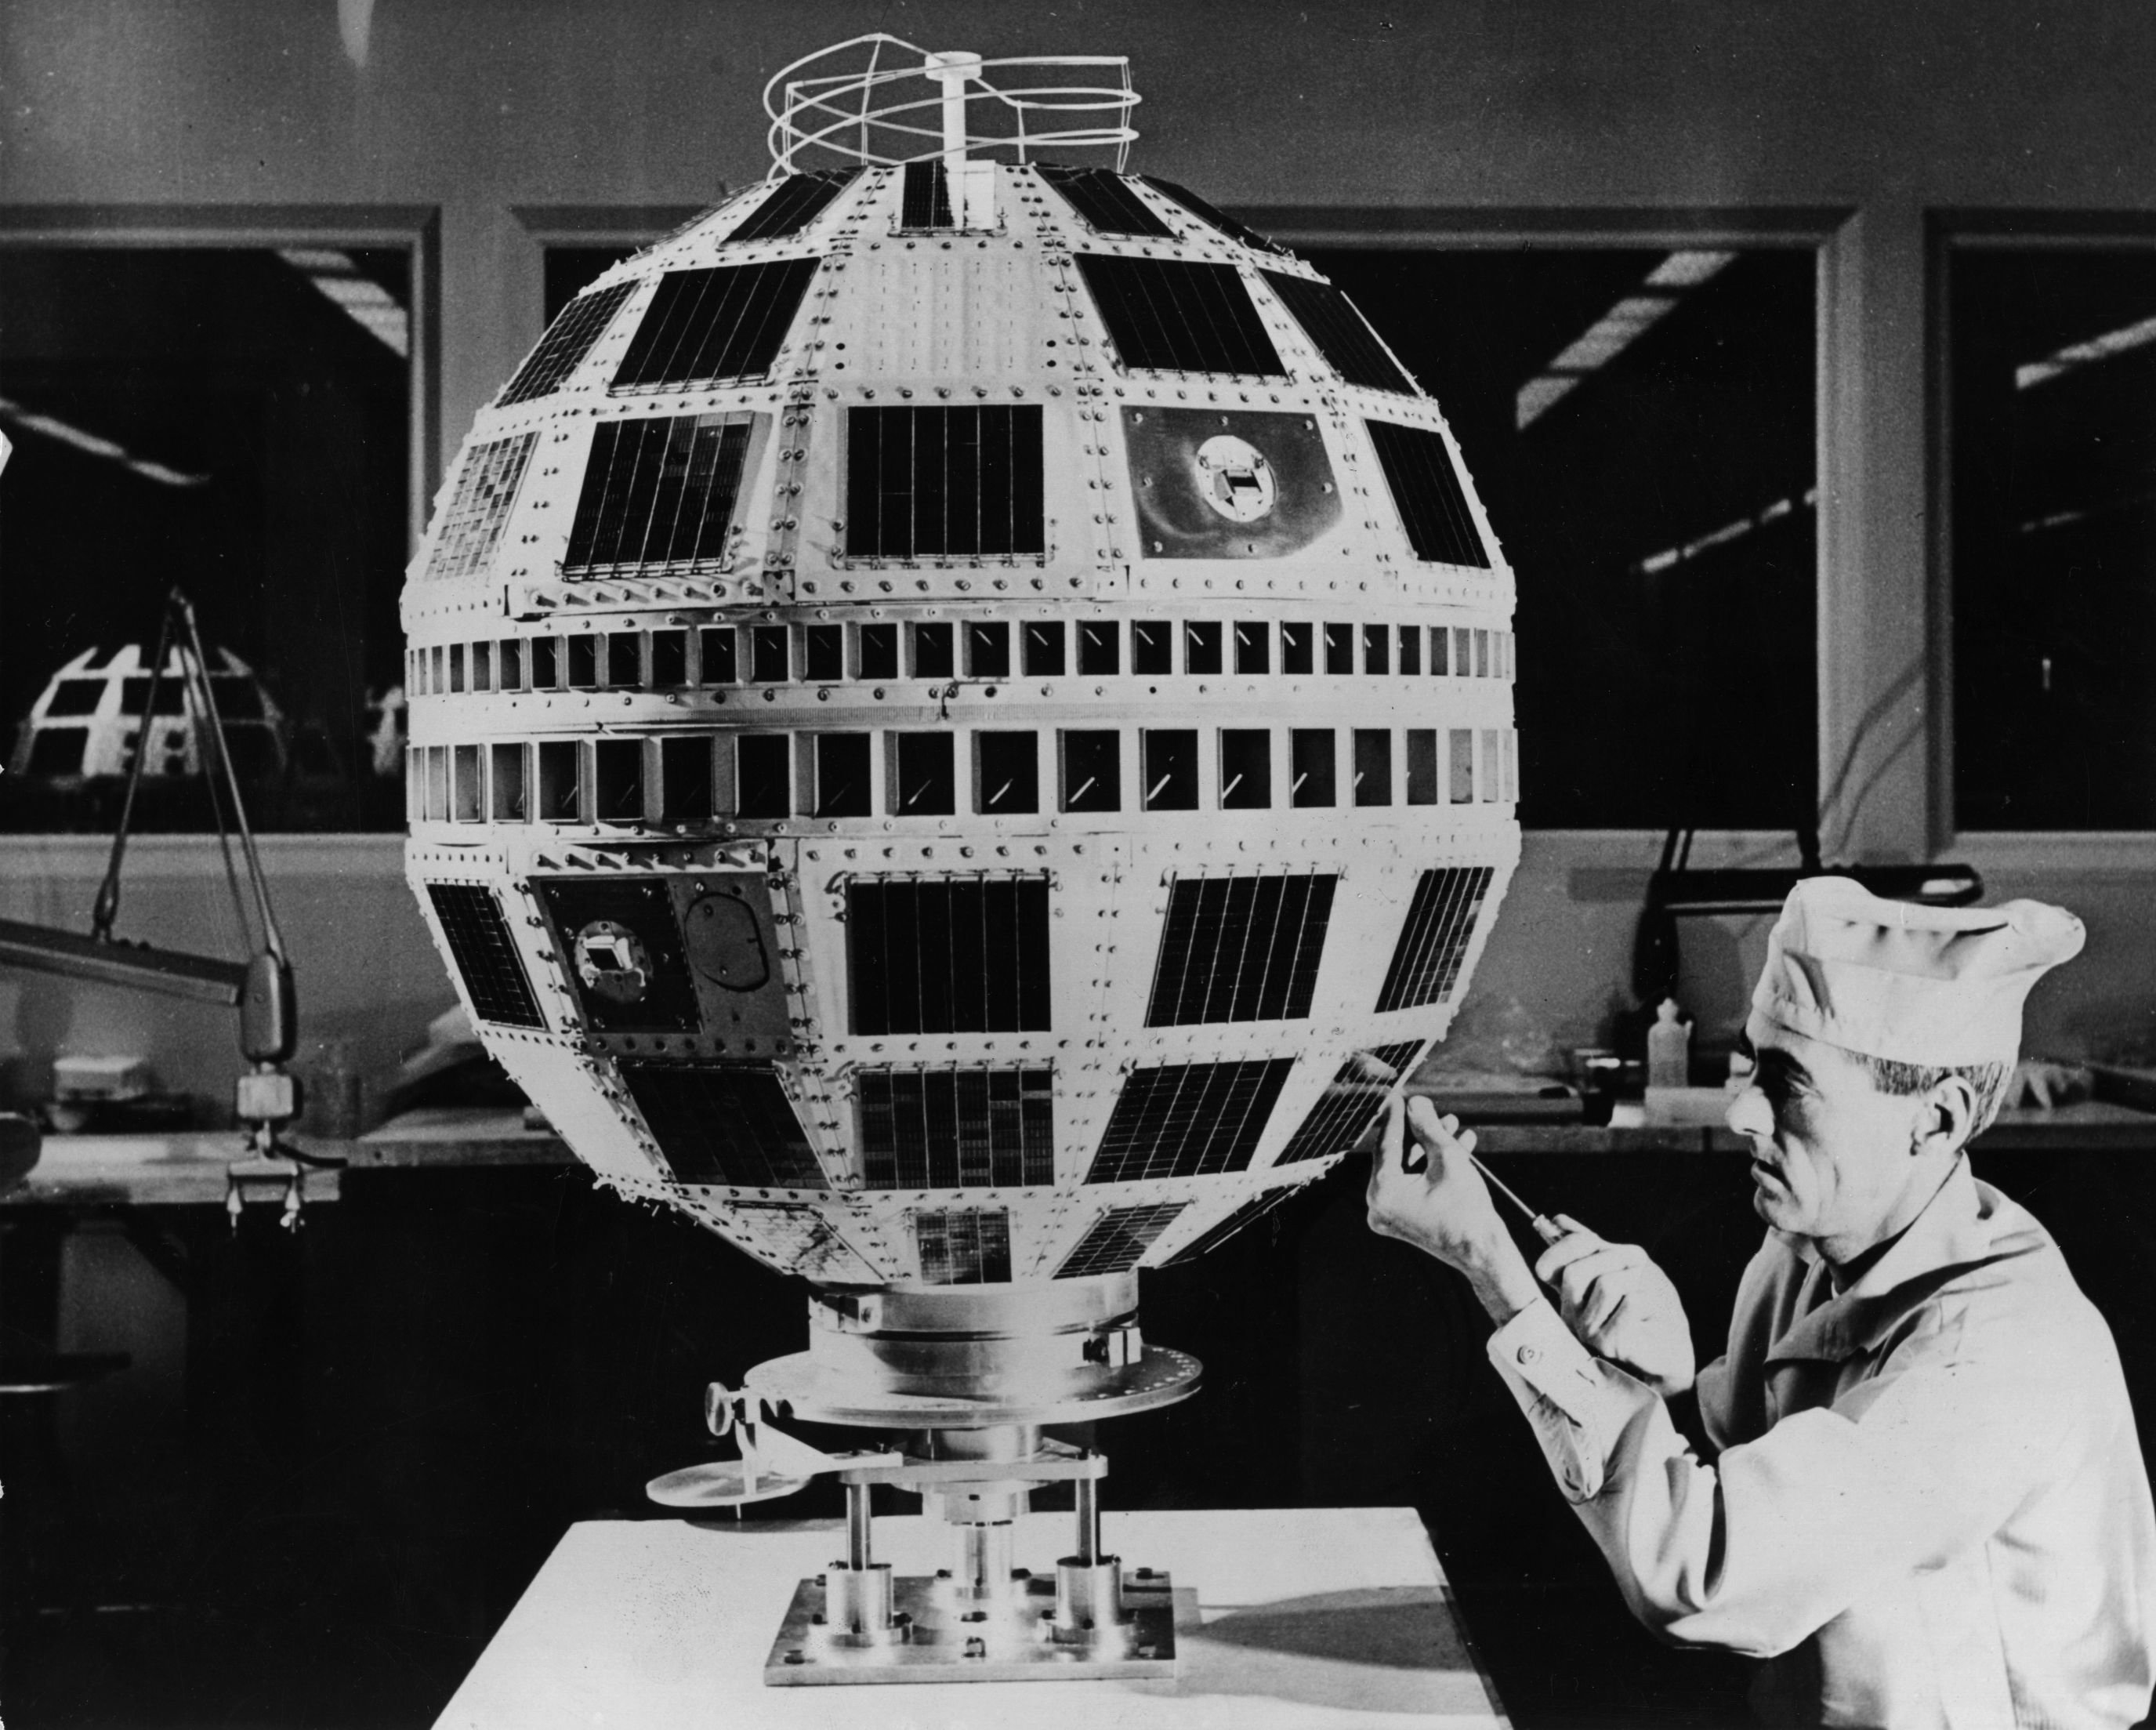 10 Attractive The Idea Factory Bell Labs from transistors to telstar idea factory traces bell labs legacy